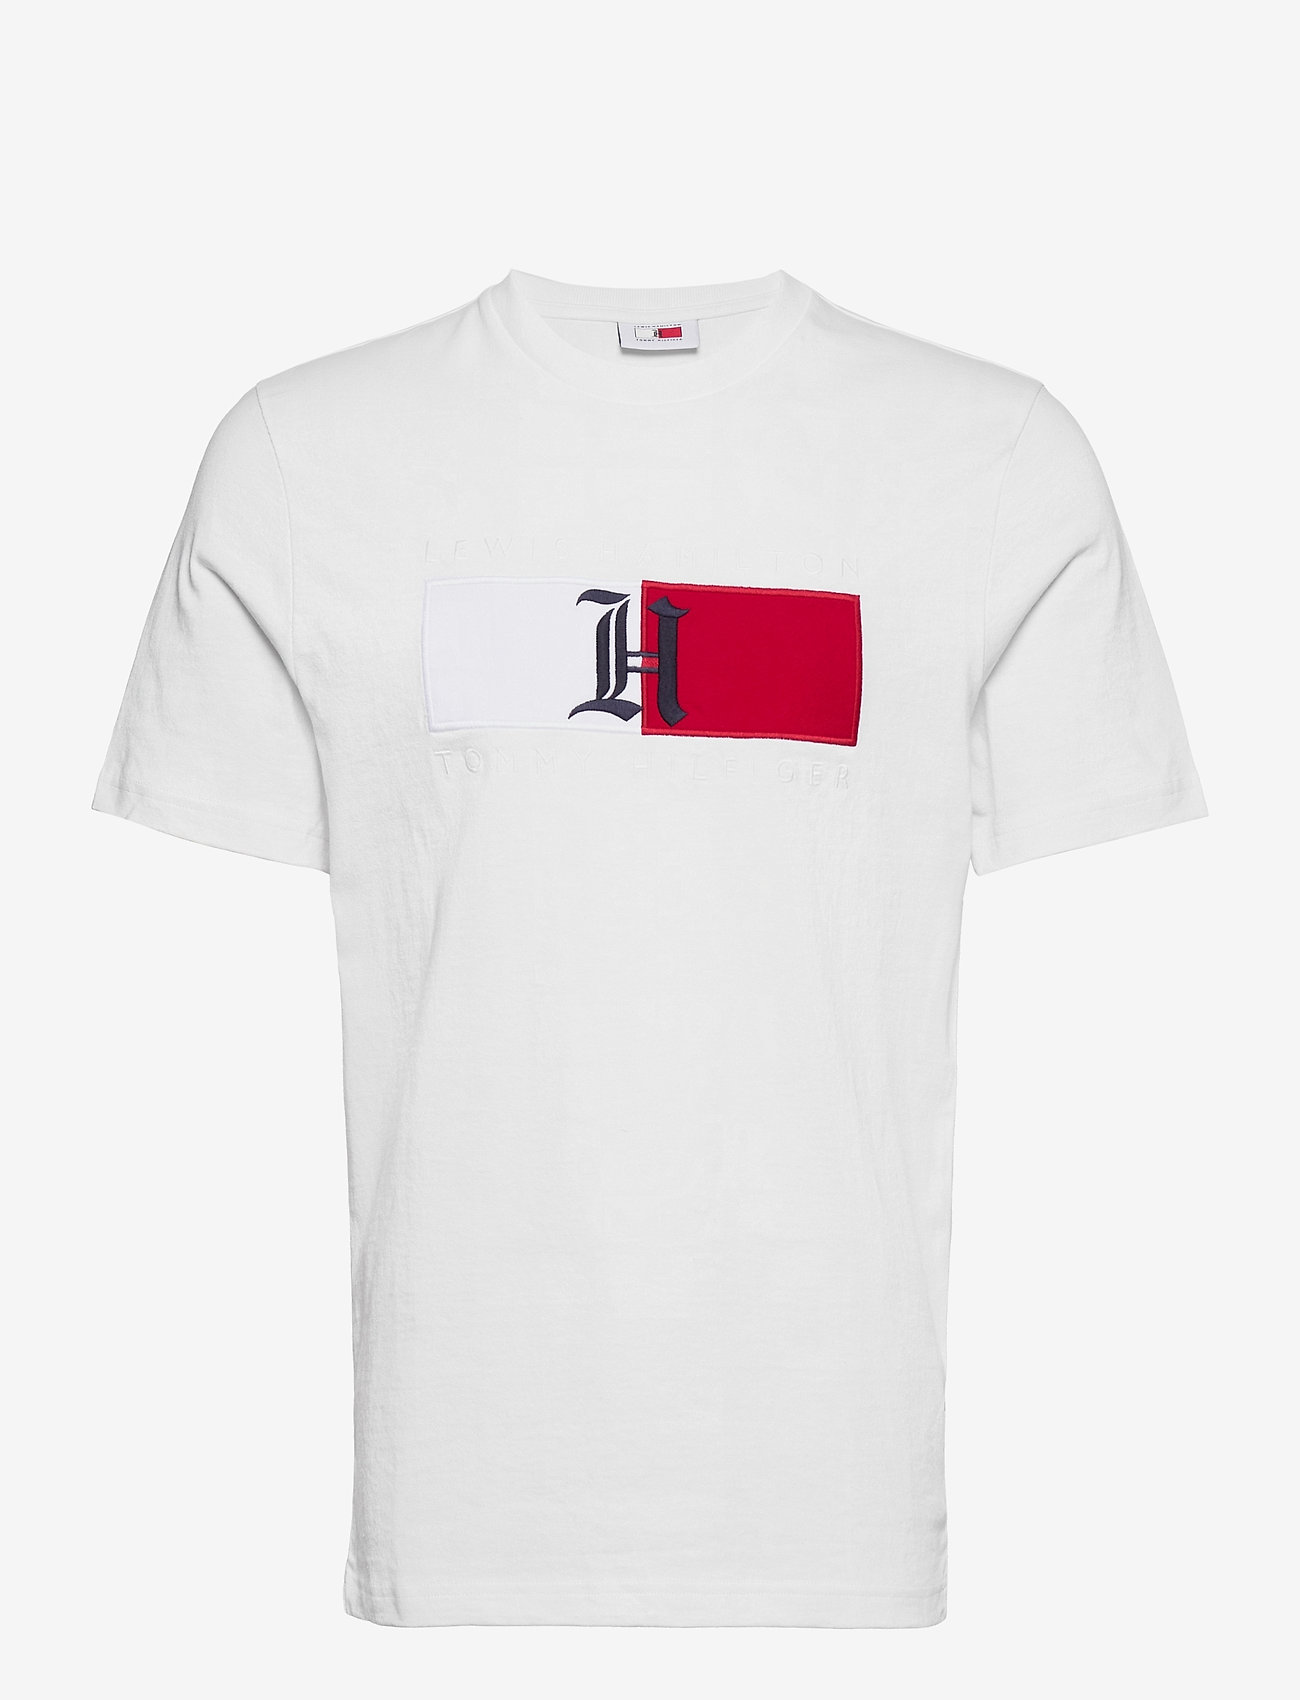 Tommy Hilfiger - LH CLASSIC LOGO TEE - short-sleeved t-shirts - white - 0